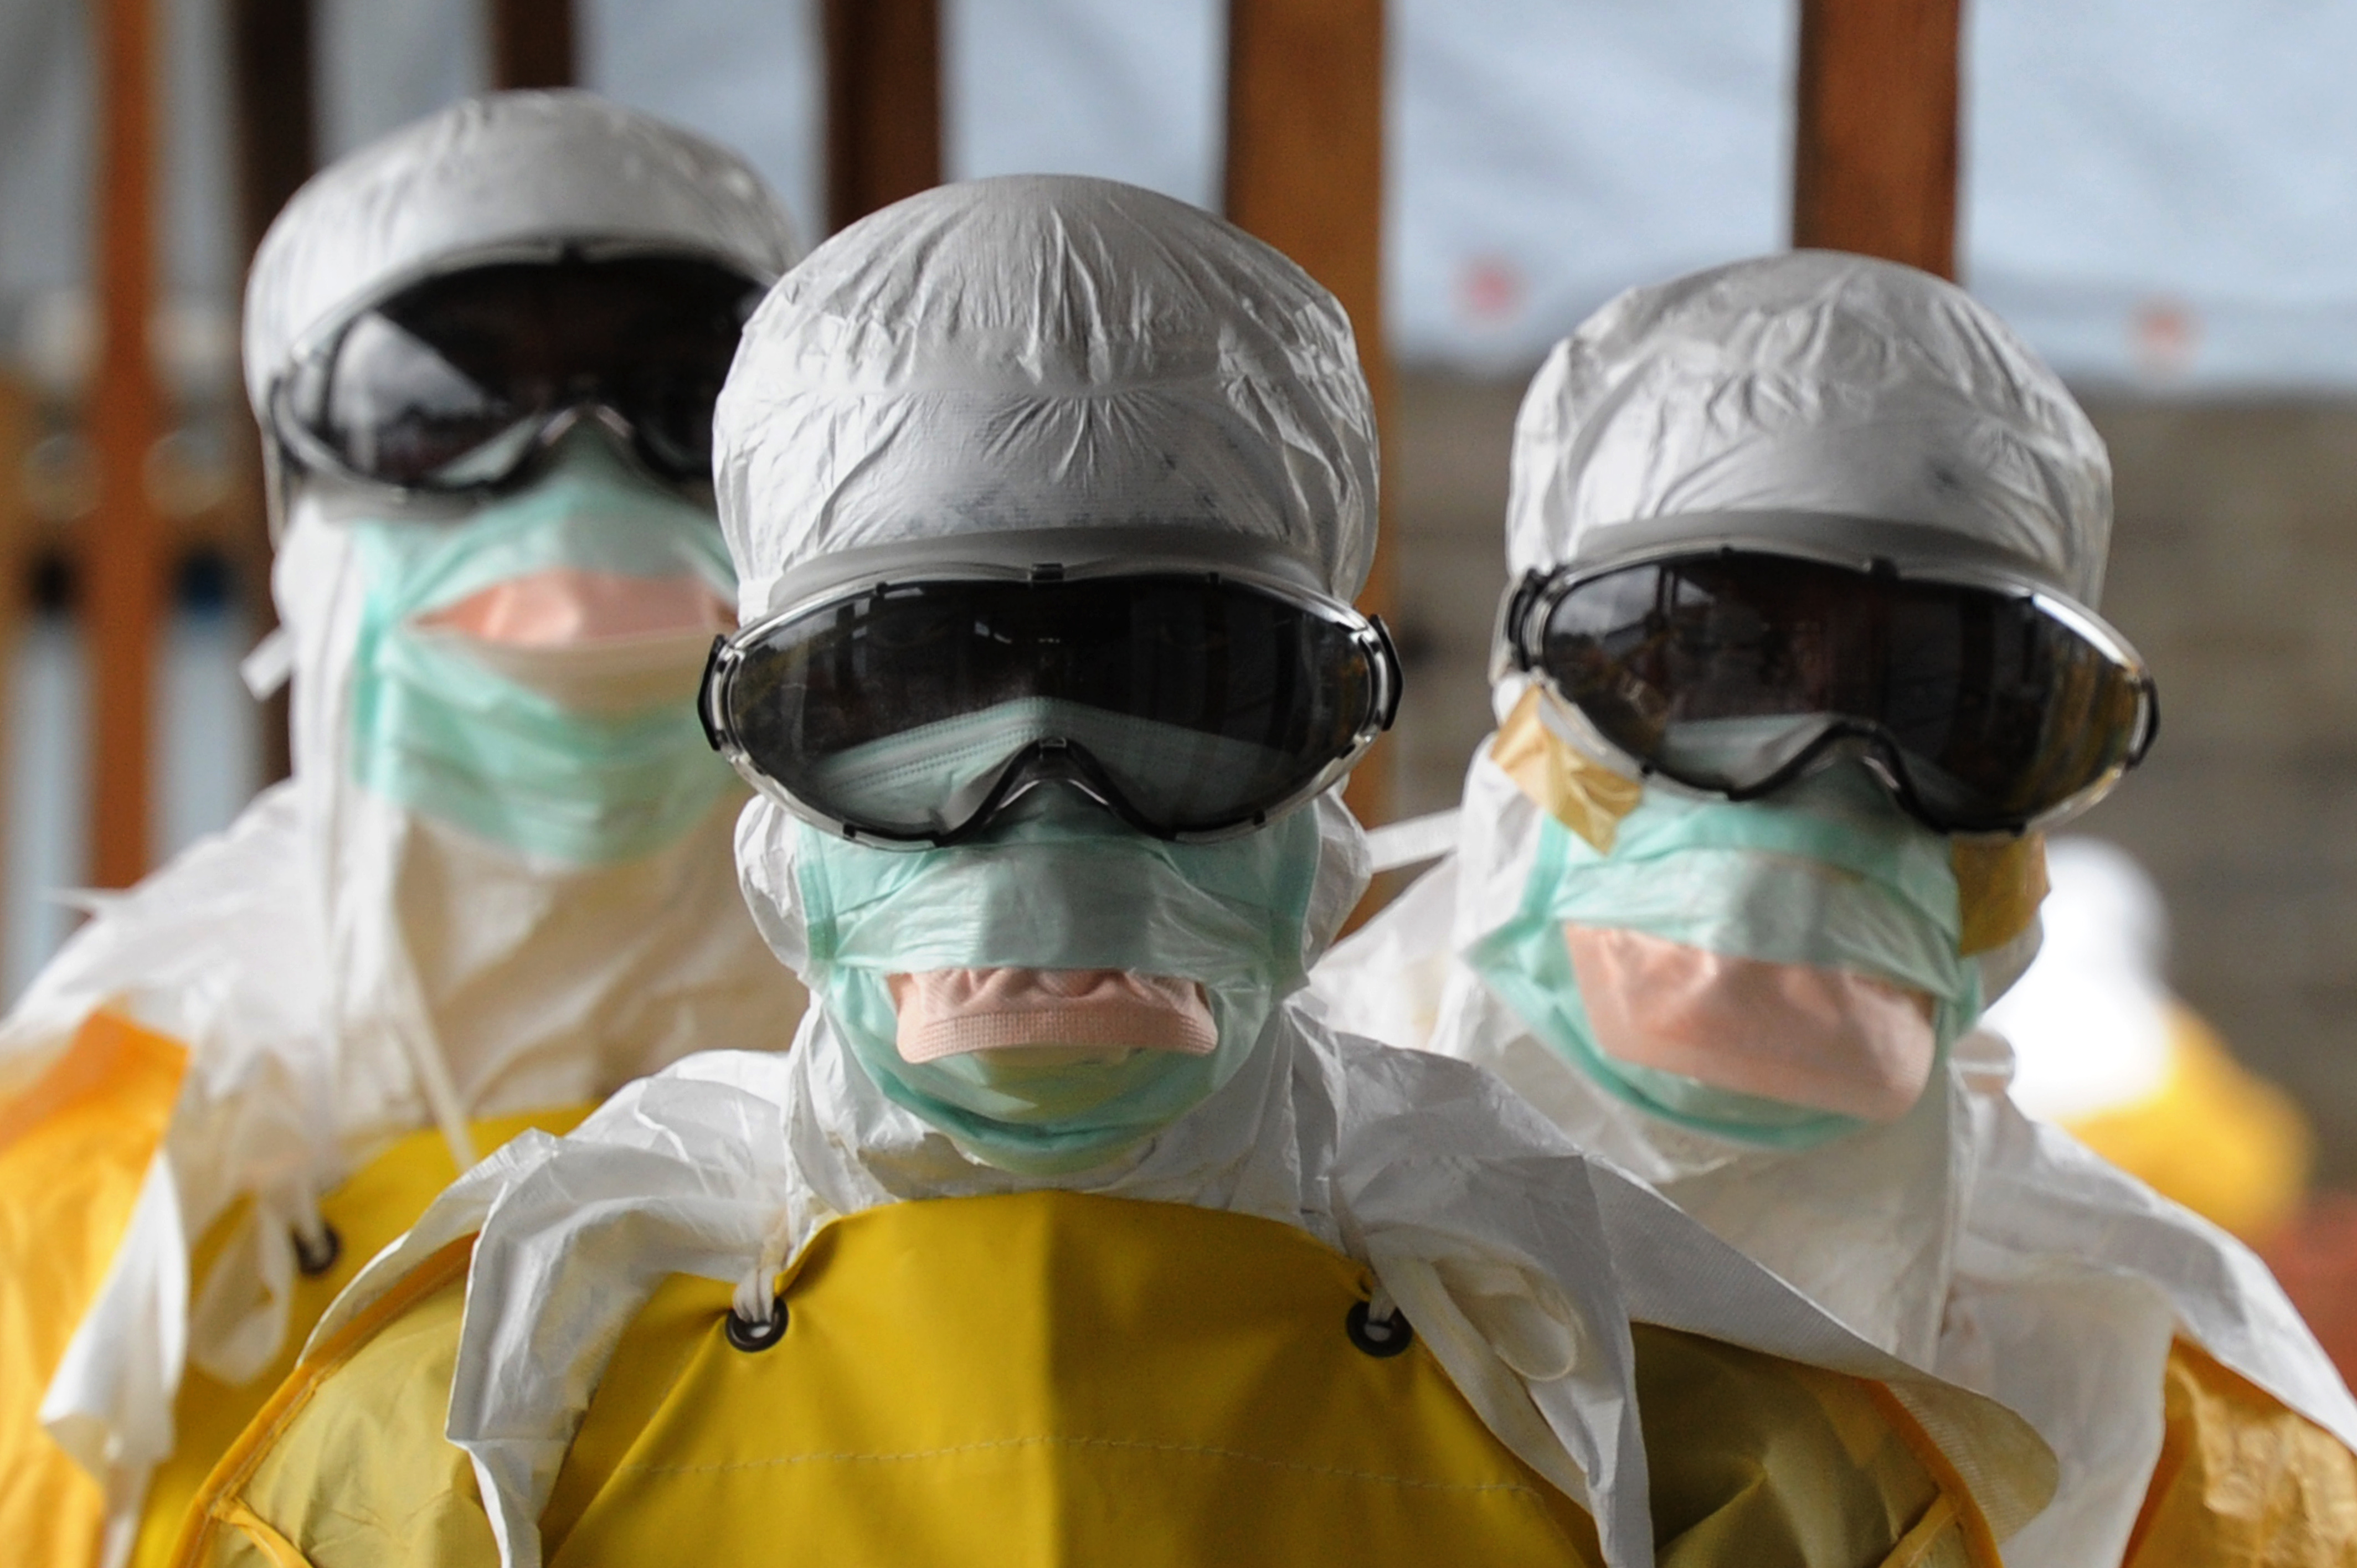 Health care workers, wearing protective suits, leave a high-risk area at the French NGO Medecins Sans Frontieres (Doctors without borders) Elwa hospital on Aug. 30, 2014 in Monrovia.